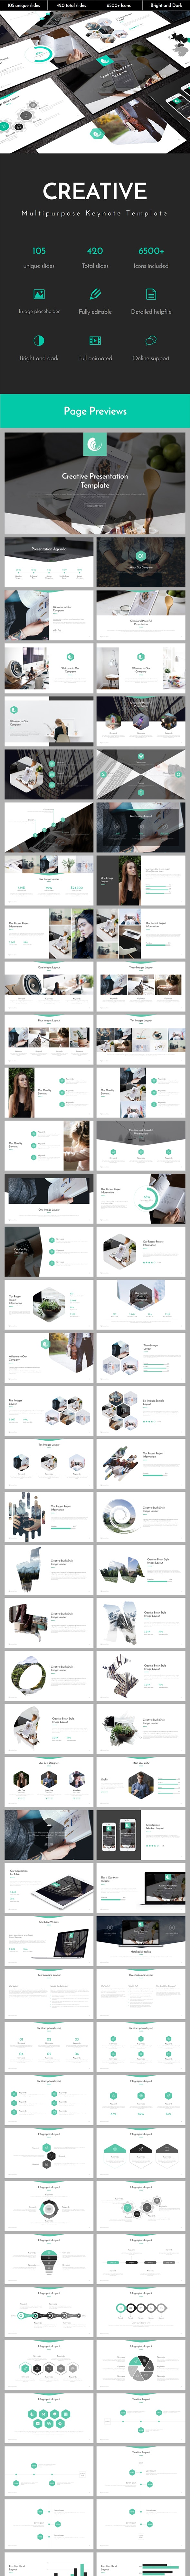 Creative Multipurpose Keynote Template - Business Keynote Templates